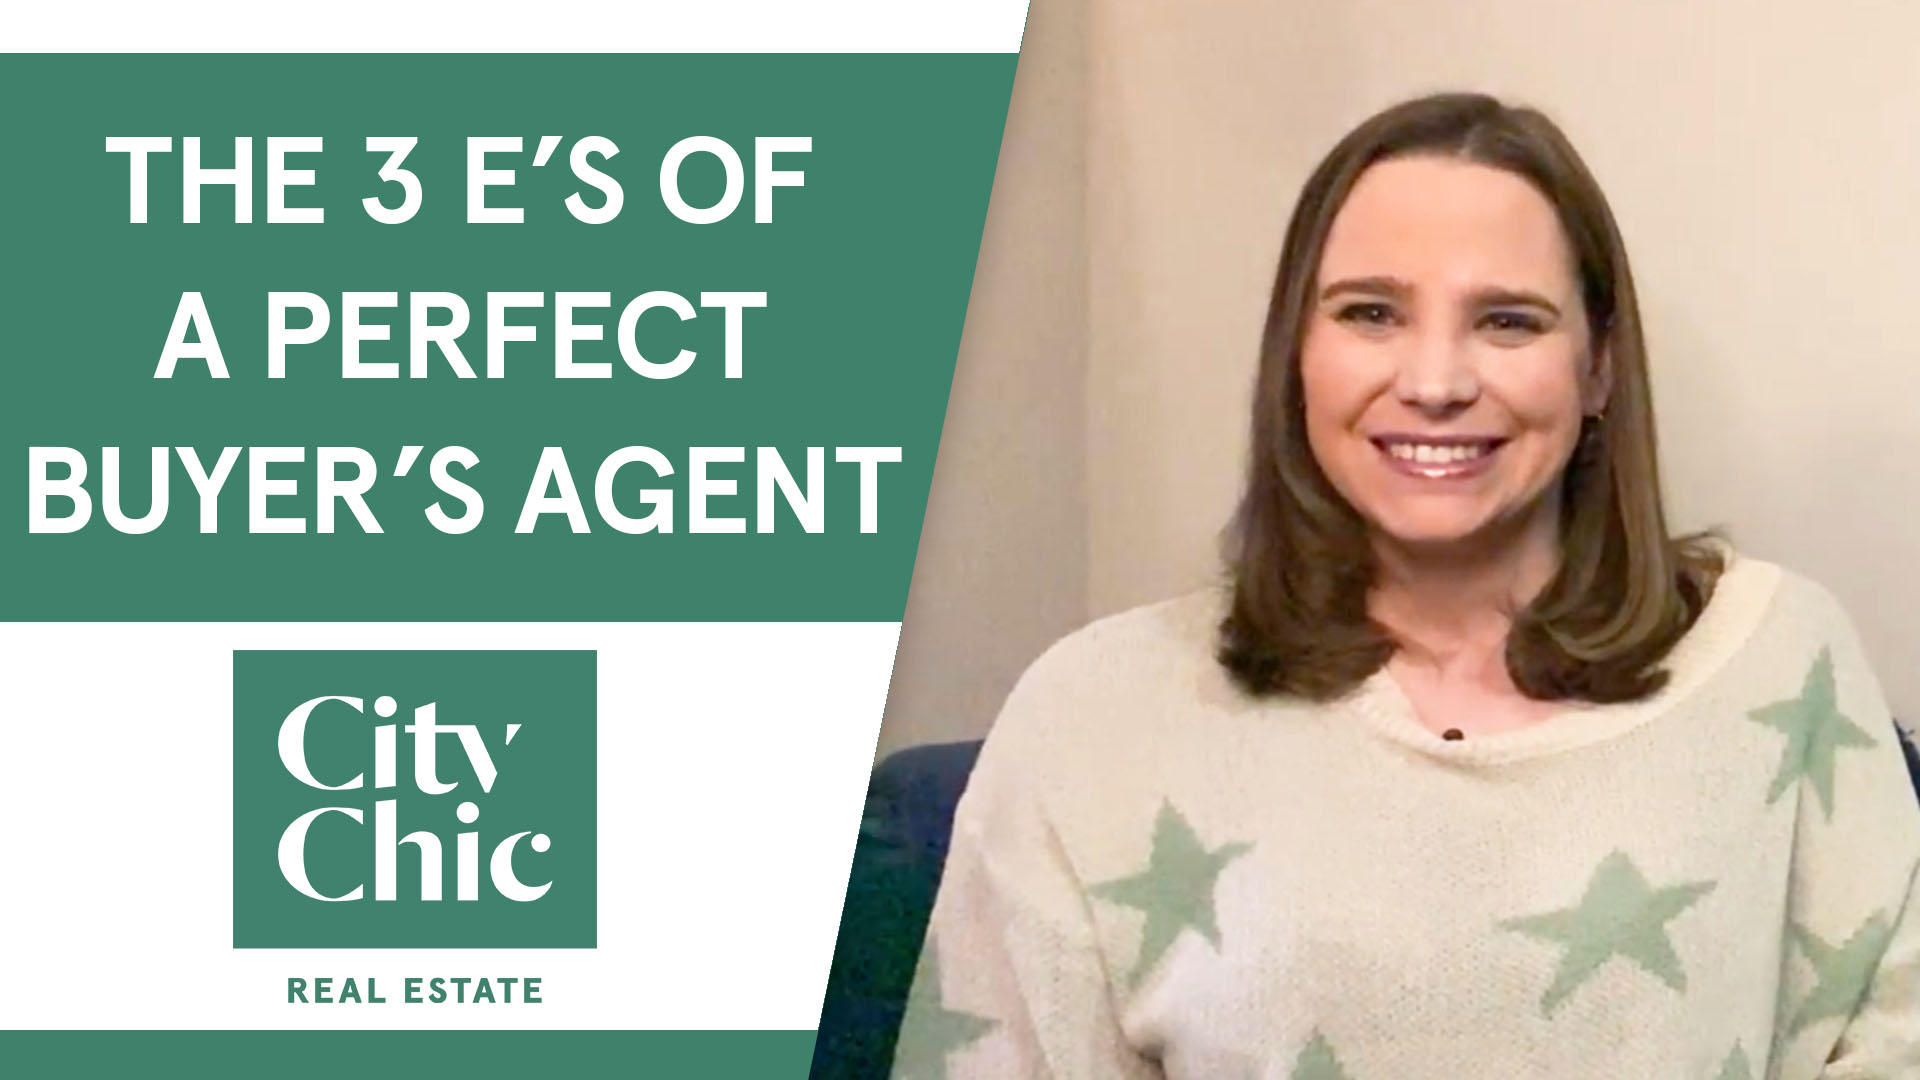 Remember the 3 E's When Looking for the Perfect Buyer's Agent